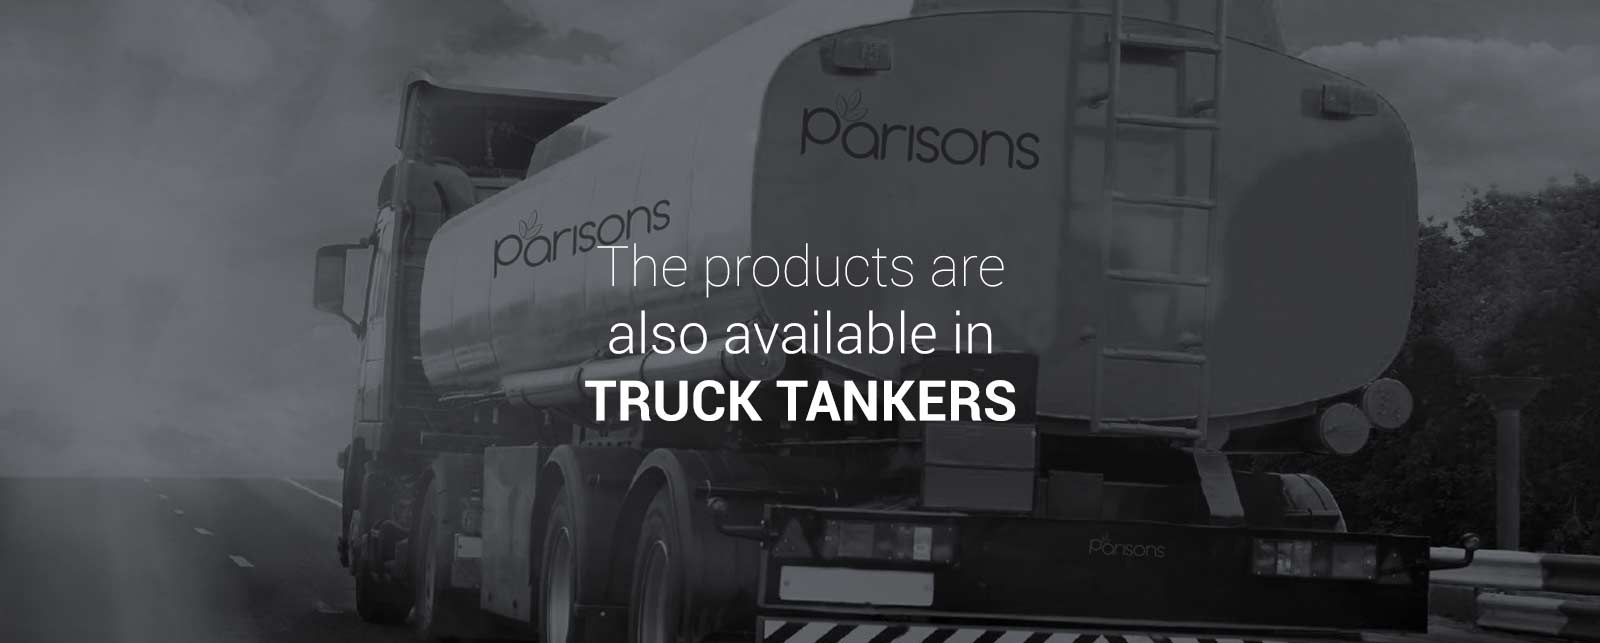 truck-tankers